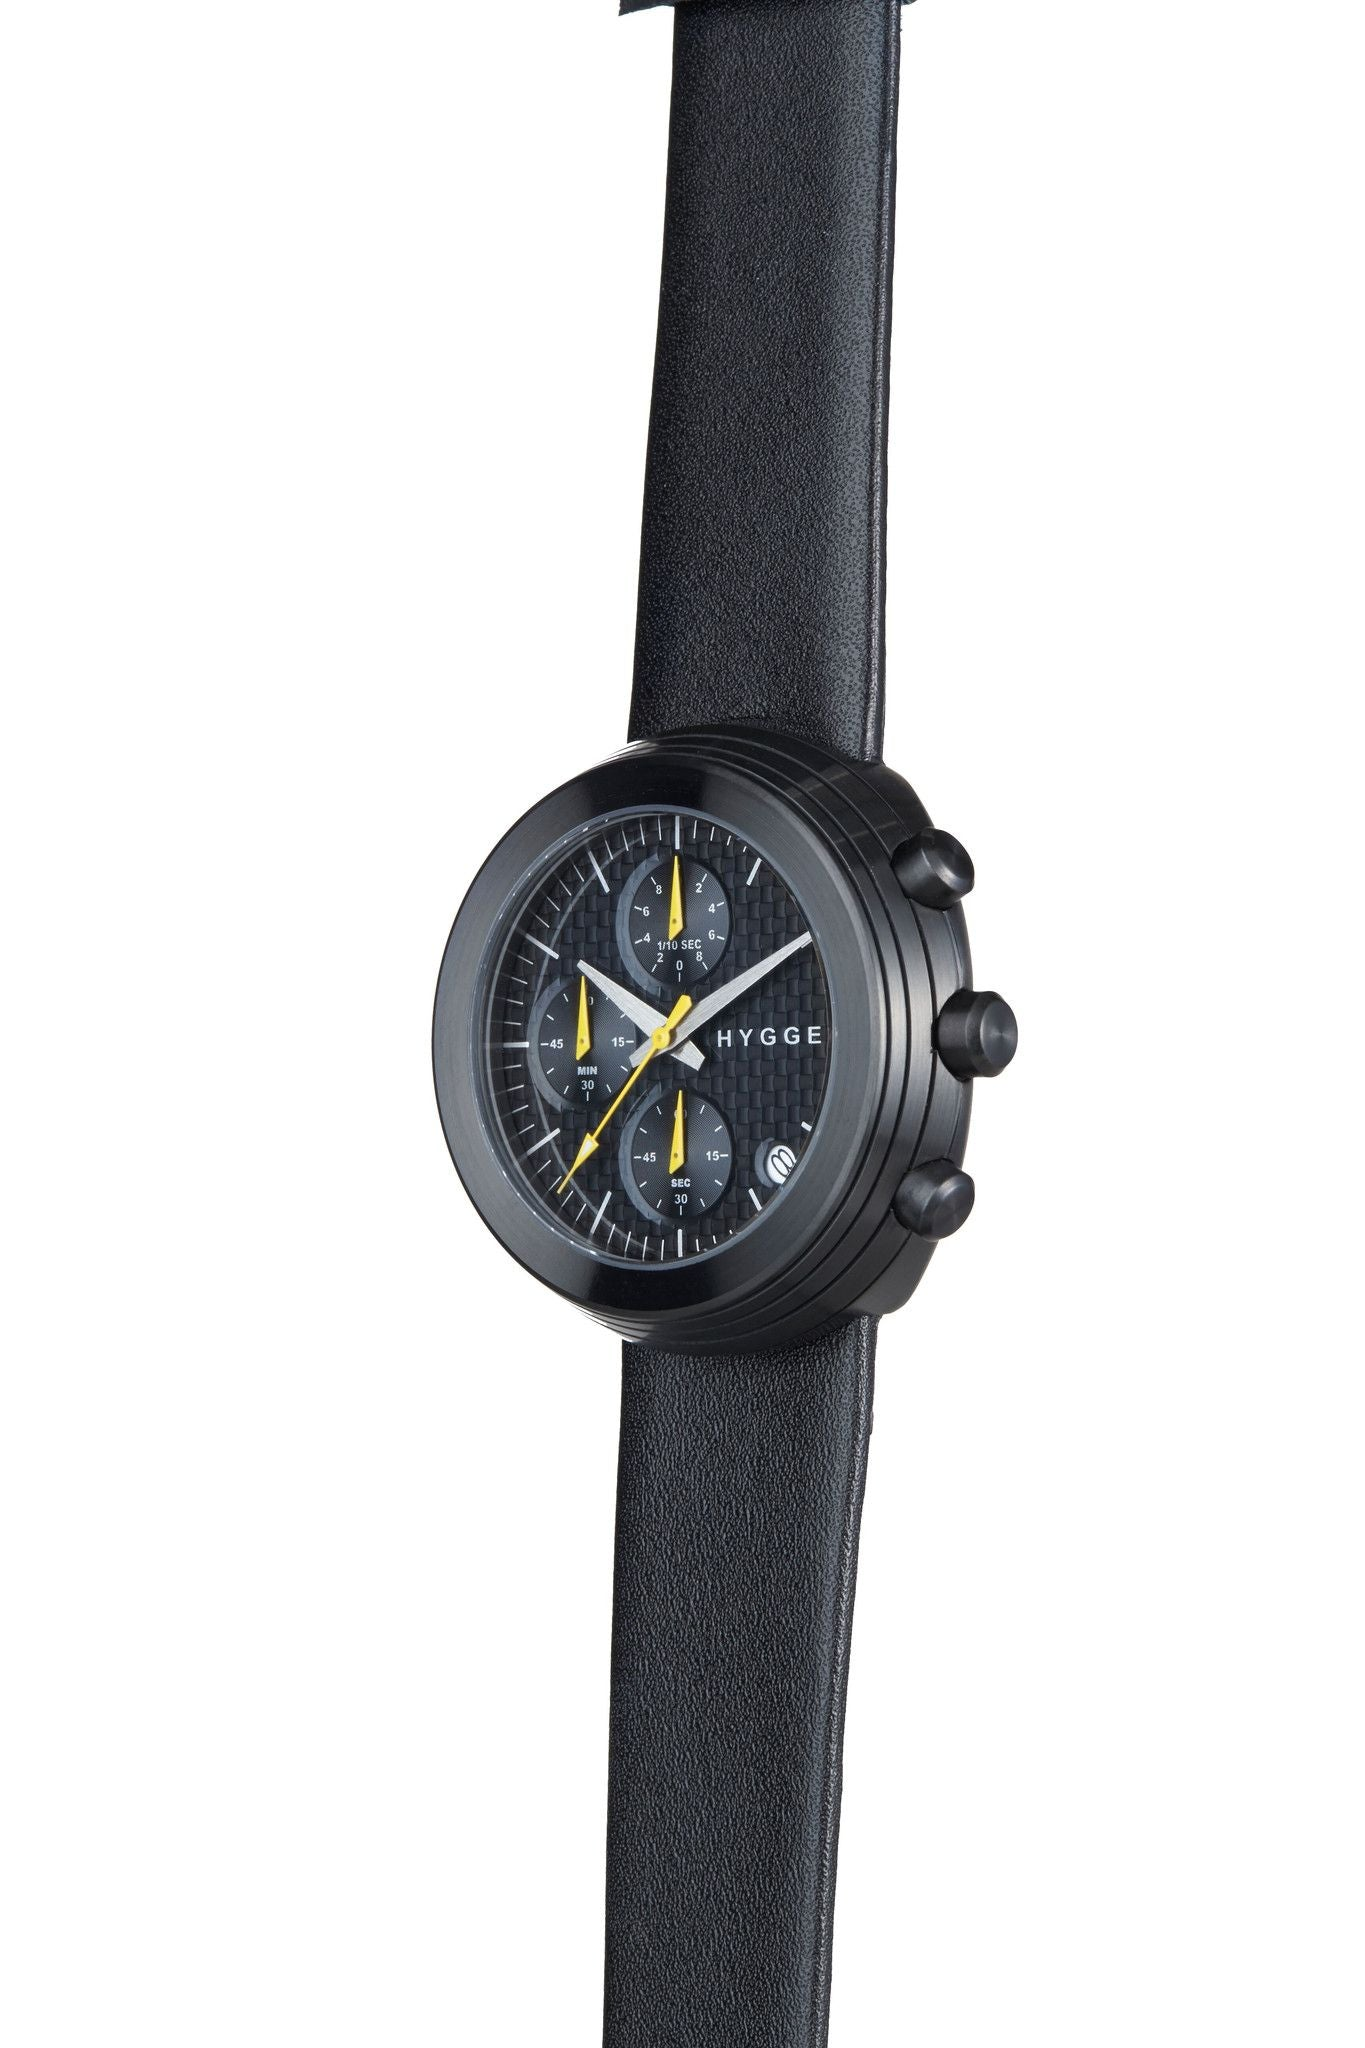 HYGGE Watch  2312 Chronograph Series Leather Strap Black/Black - Australian Gifts Online - 2